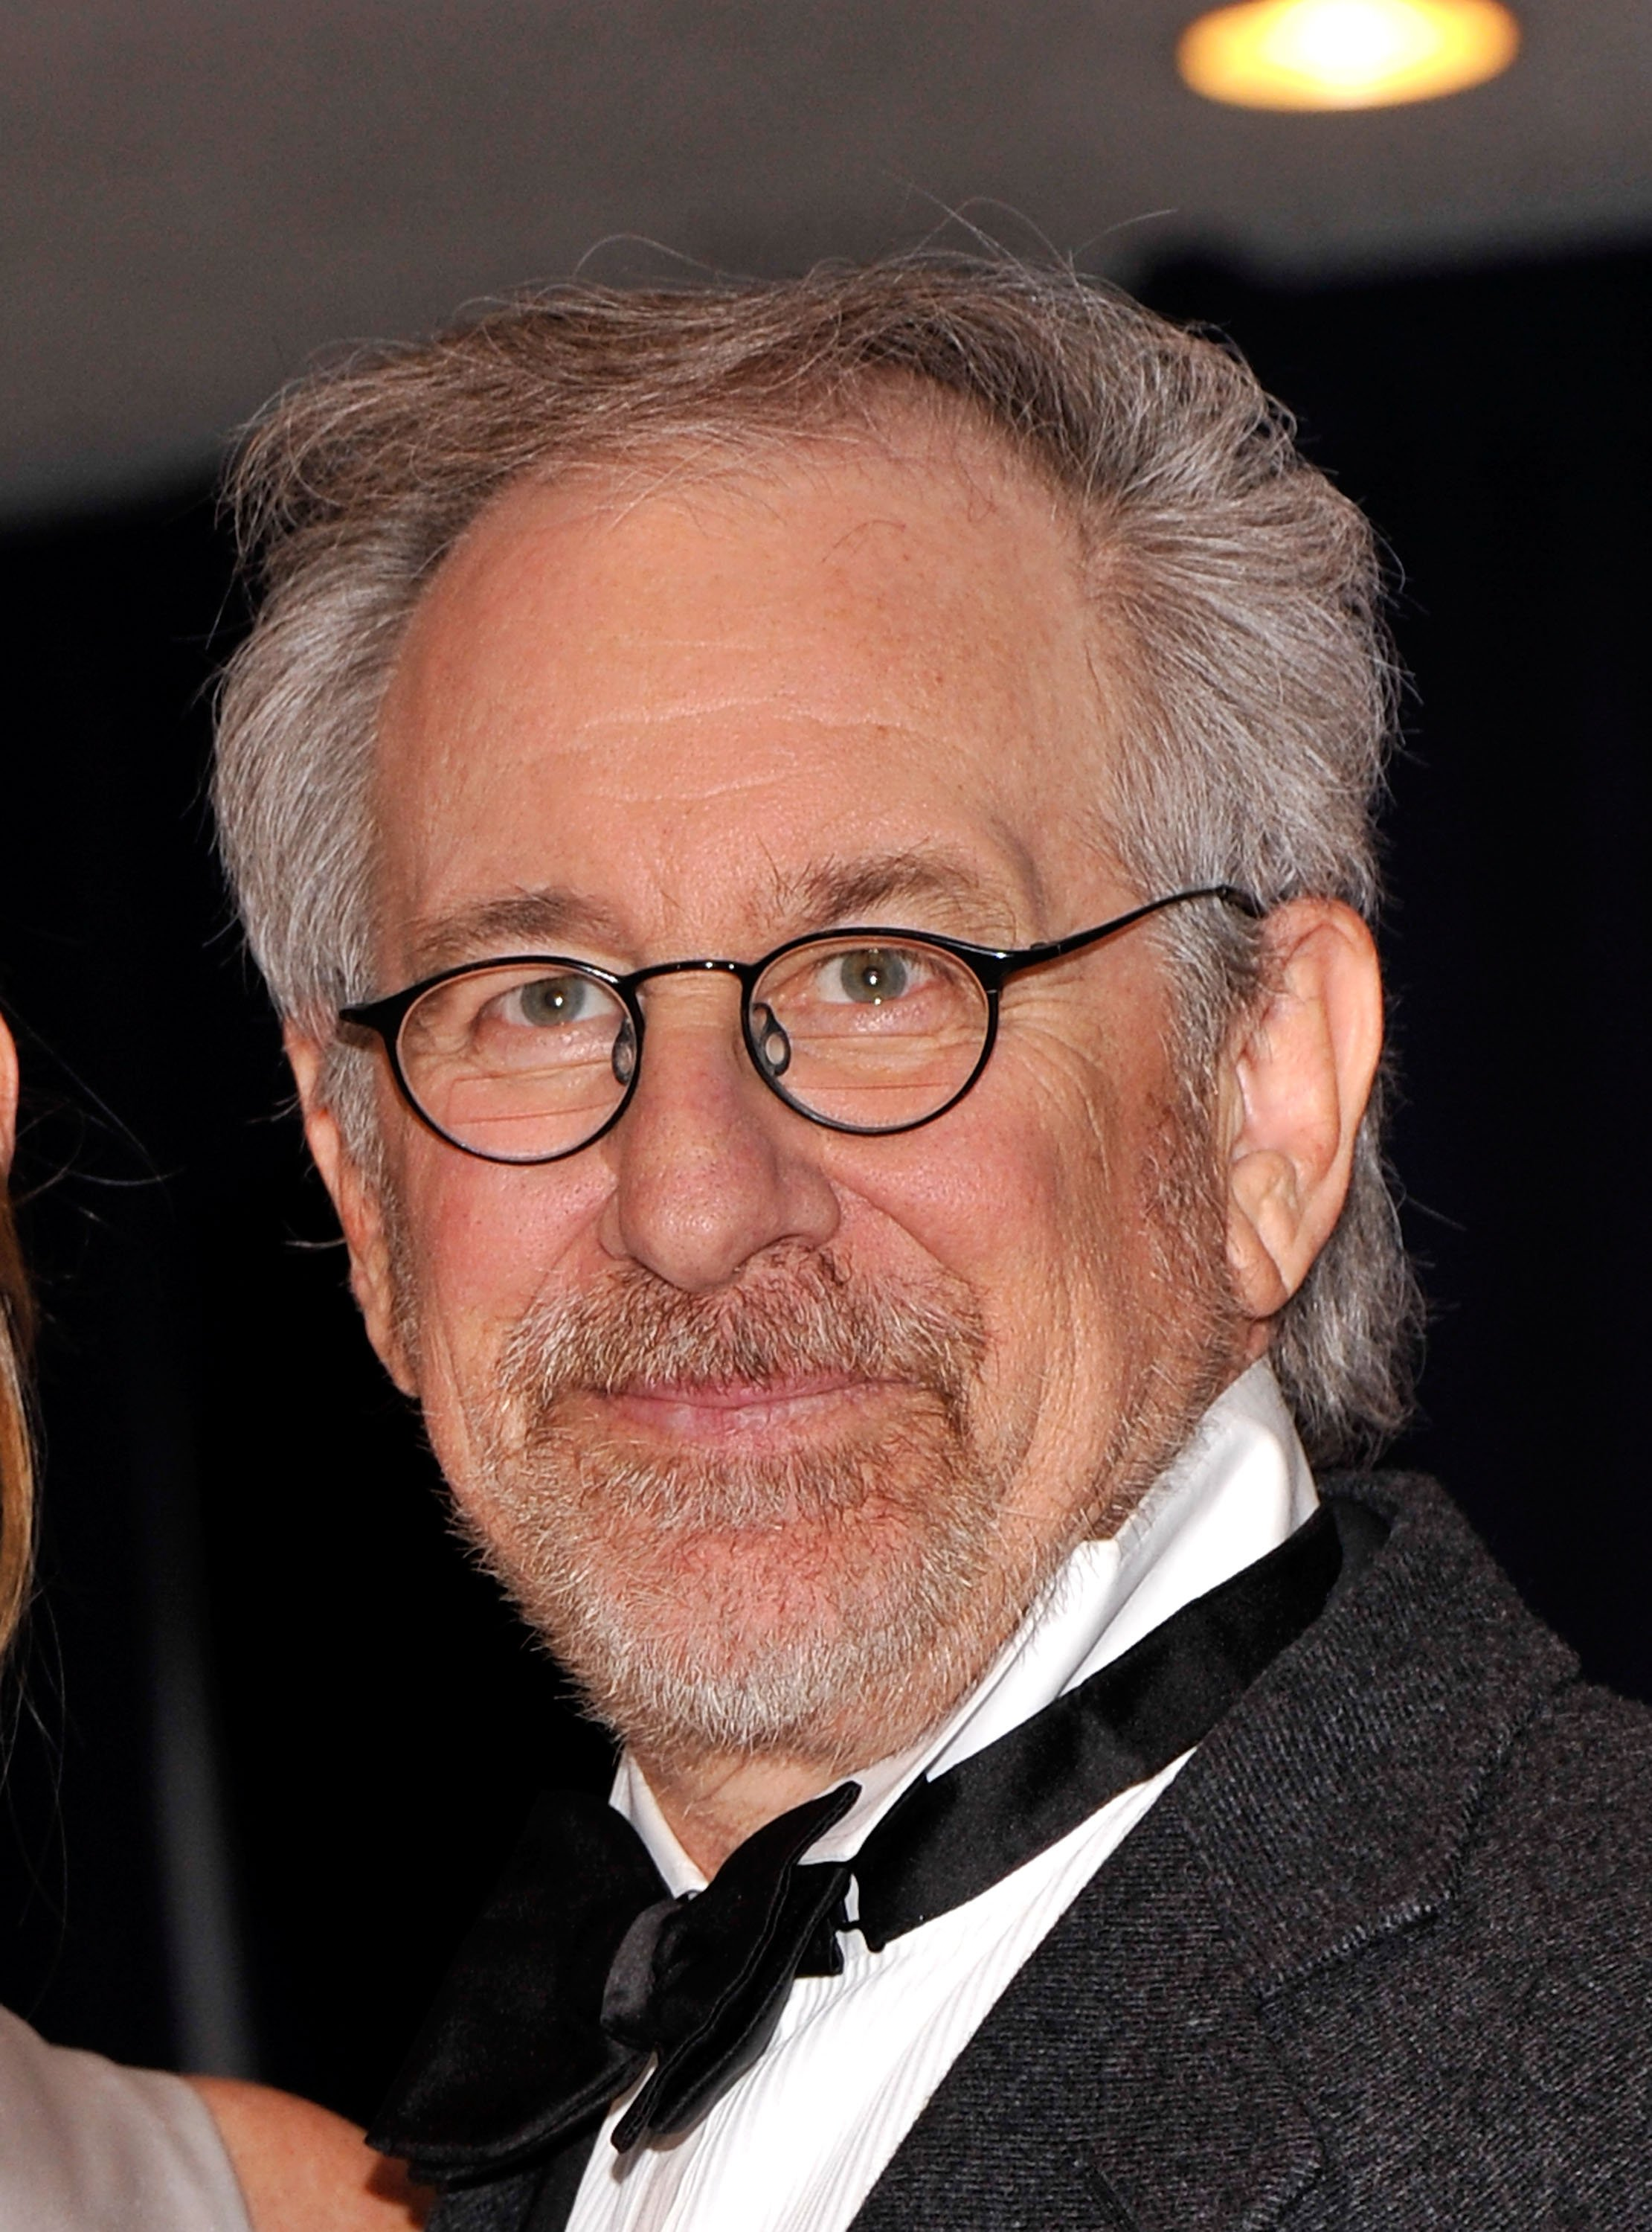 Director Steven Spielberg attends the 98th Annual White House Correspondents' Association Dinner at the Washington Hilton on April 28, 2012, in Washington, DC. | Getty Images.